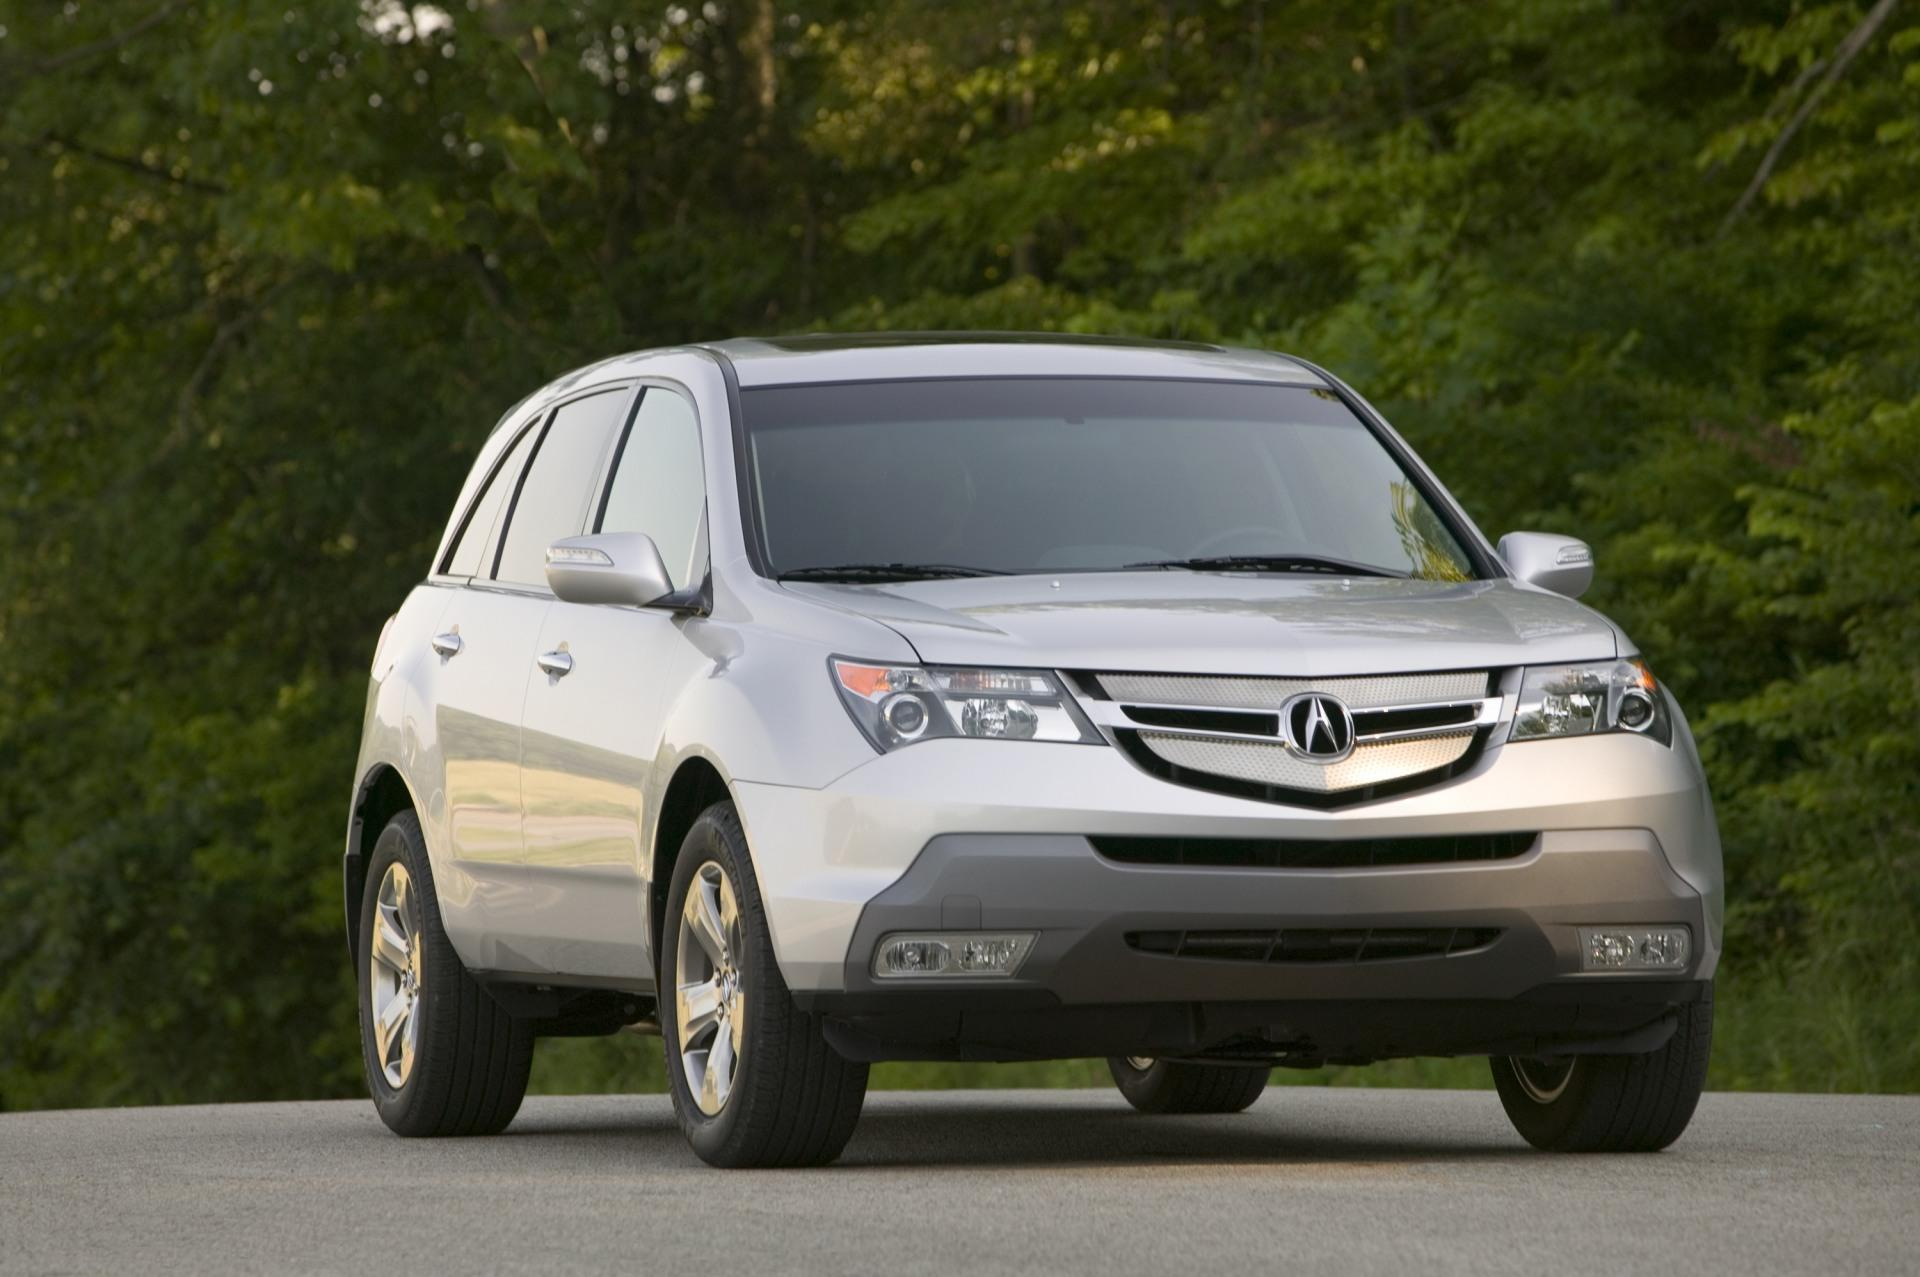 2009 acura mdx technical specifications and data engine